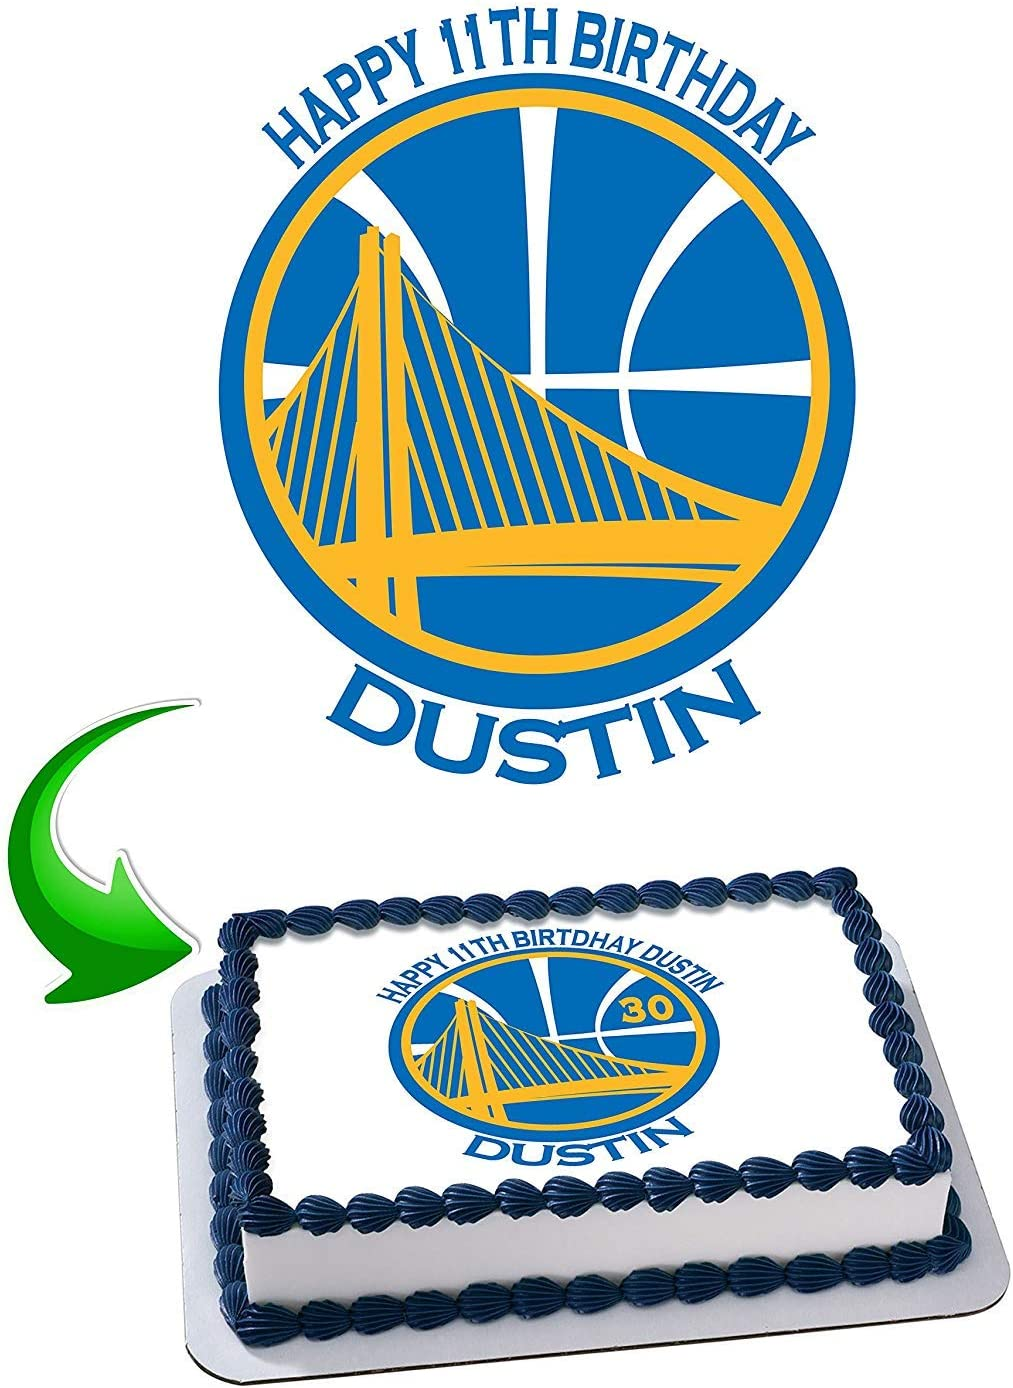 GOLDEN STATE WARRIORS BASKETBALL A4 ICING CAKE TOPPER PERSONALISED BIRTHDAY